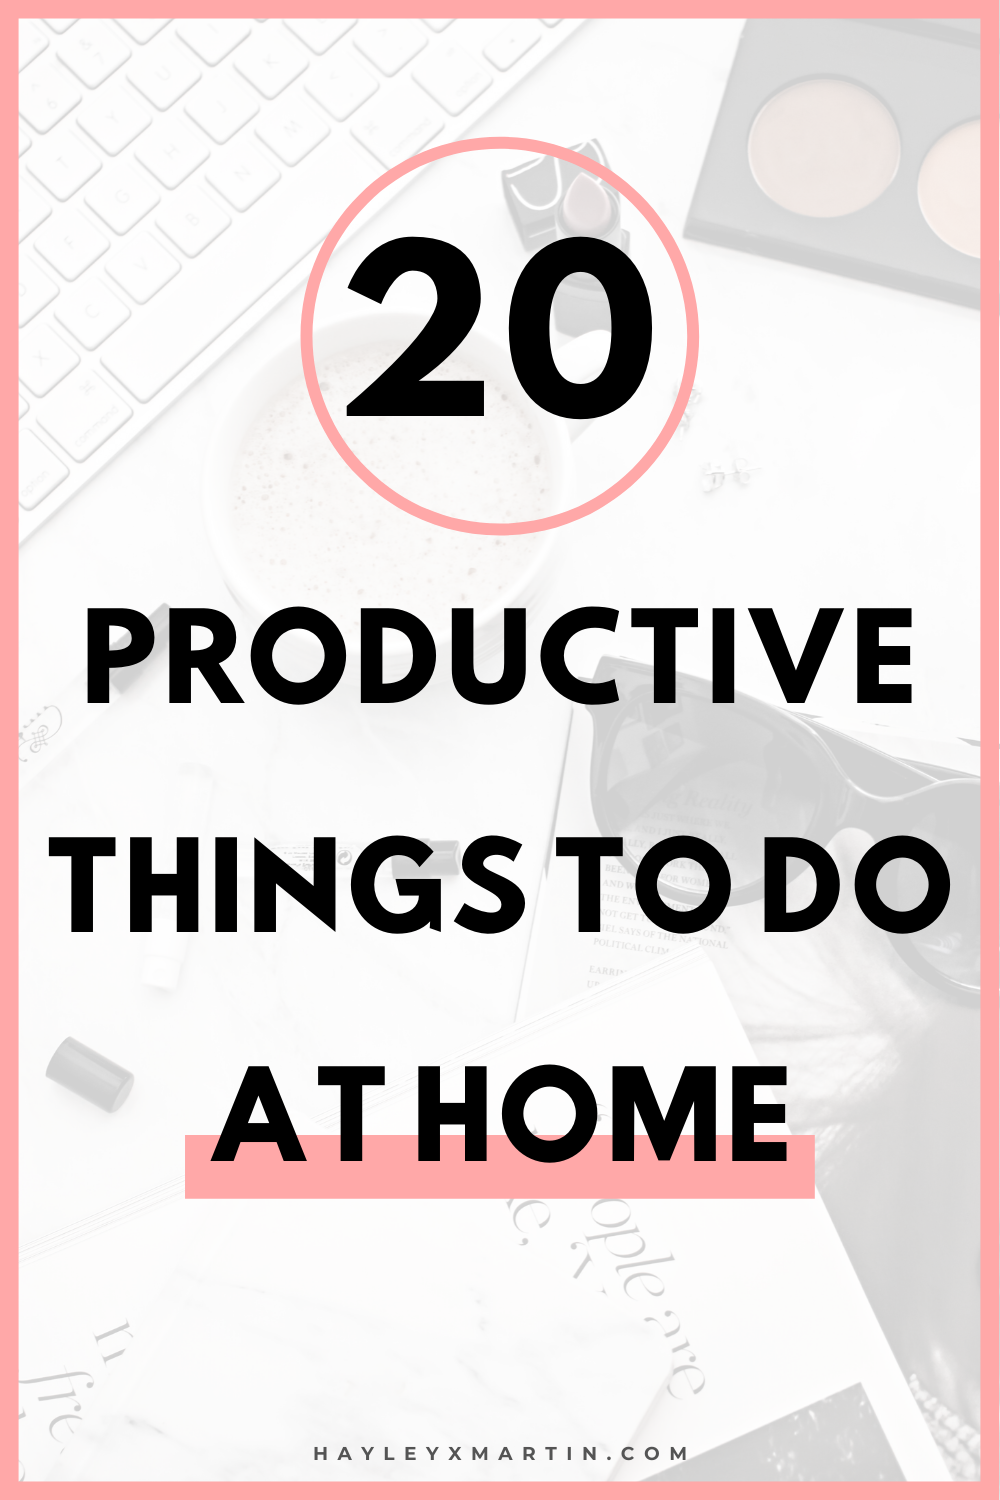 20 PRODUCTIVE THINGS TO DO AT HOME | HAYLEYXMARTIN.COM